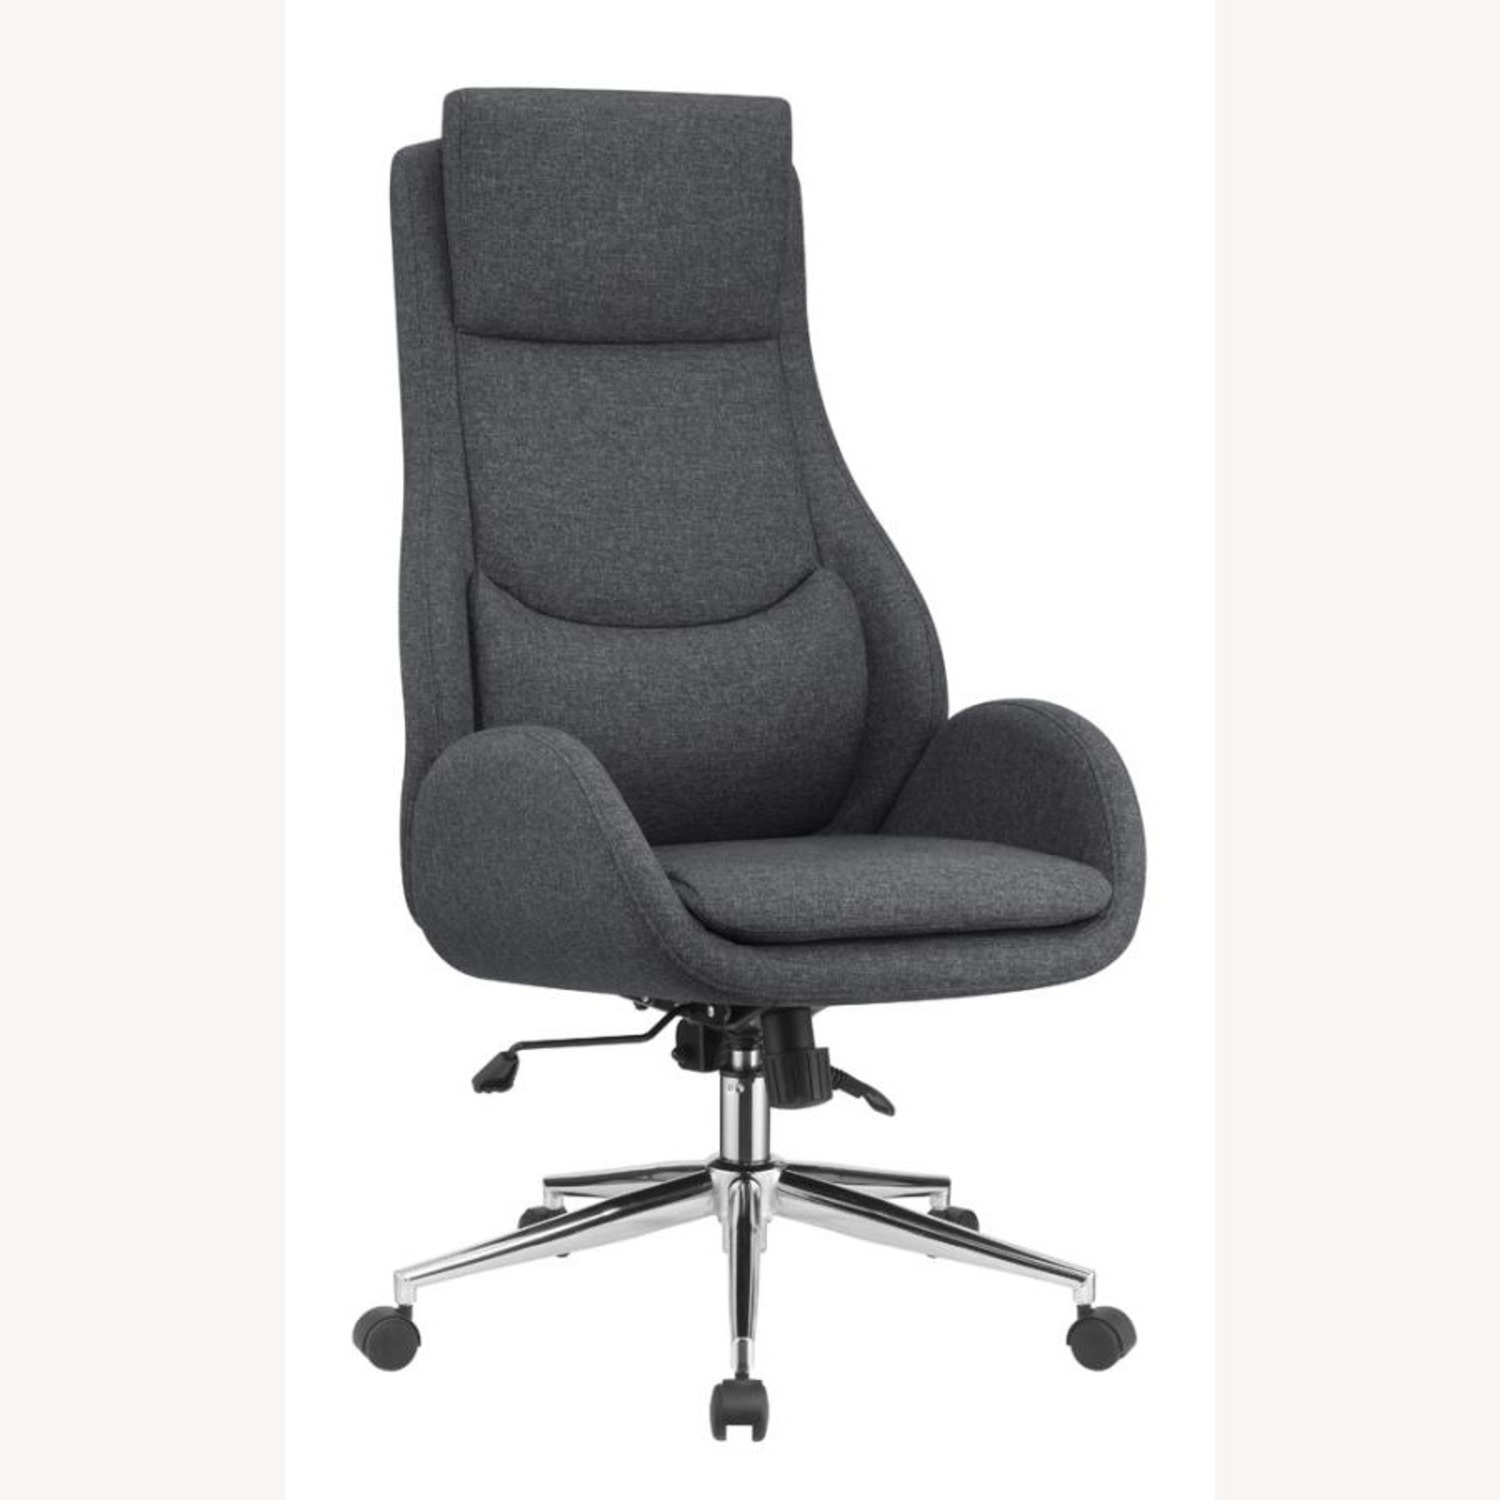 Office Chair In Grey Finish W/ Chrome Metal Base - image-0